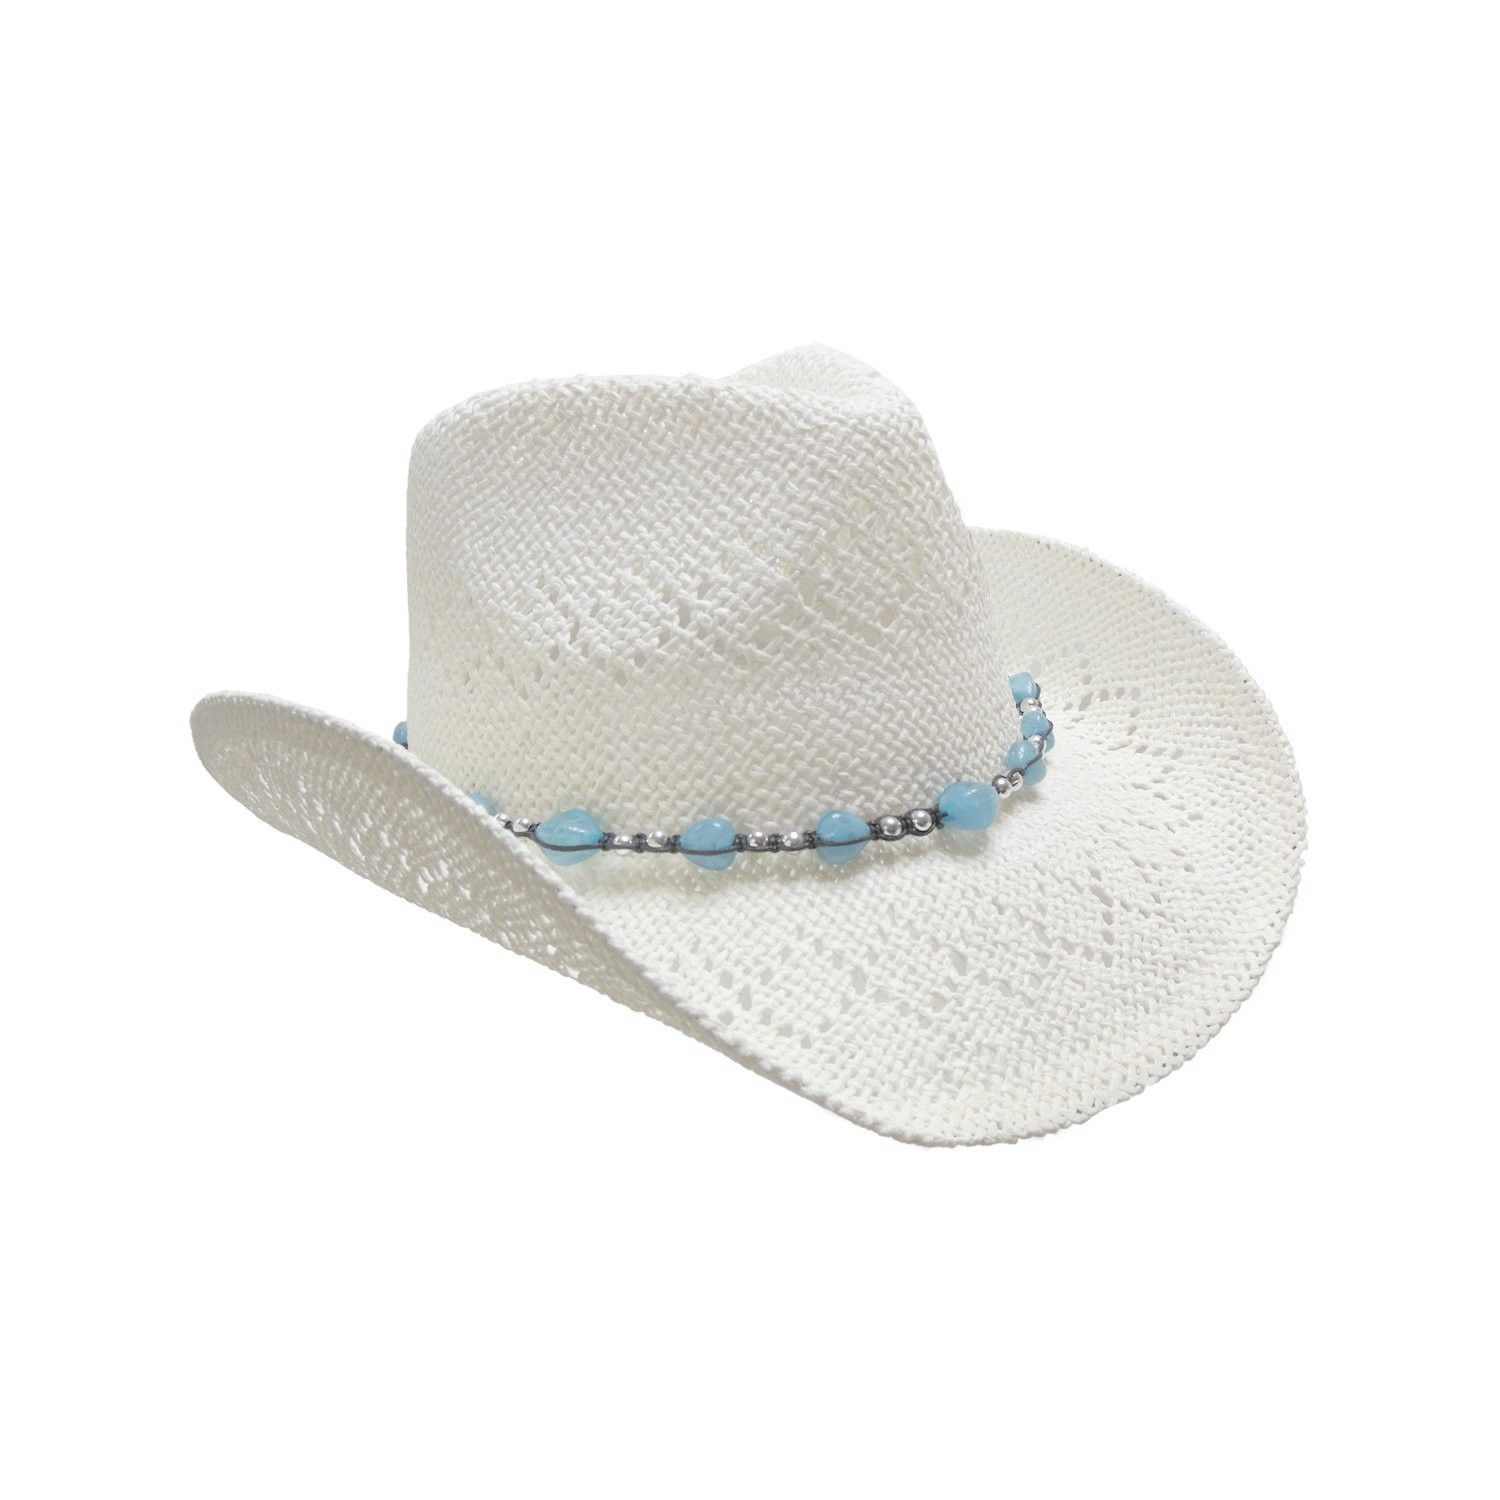 Straw Cowboy Hat for Women with Beaded Trim and Shapeable Brim - White -  CT11MAYBE41 - Hats   Caps 22707166e8a